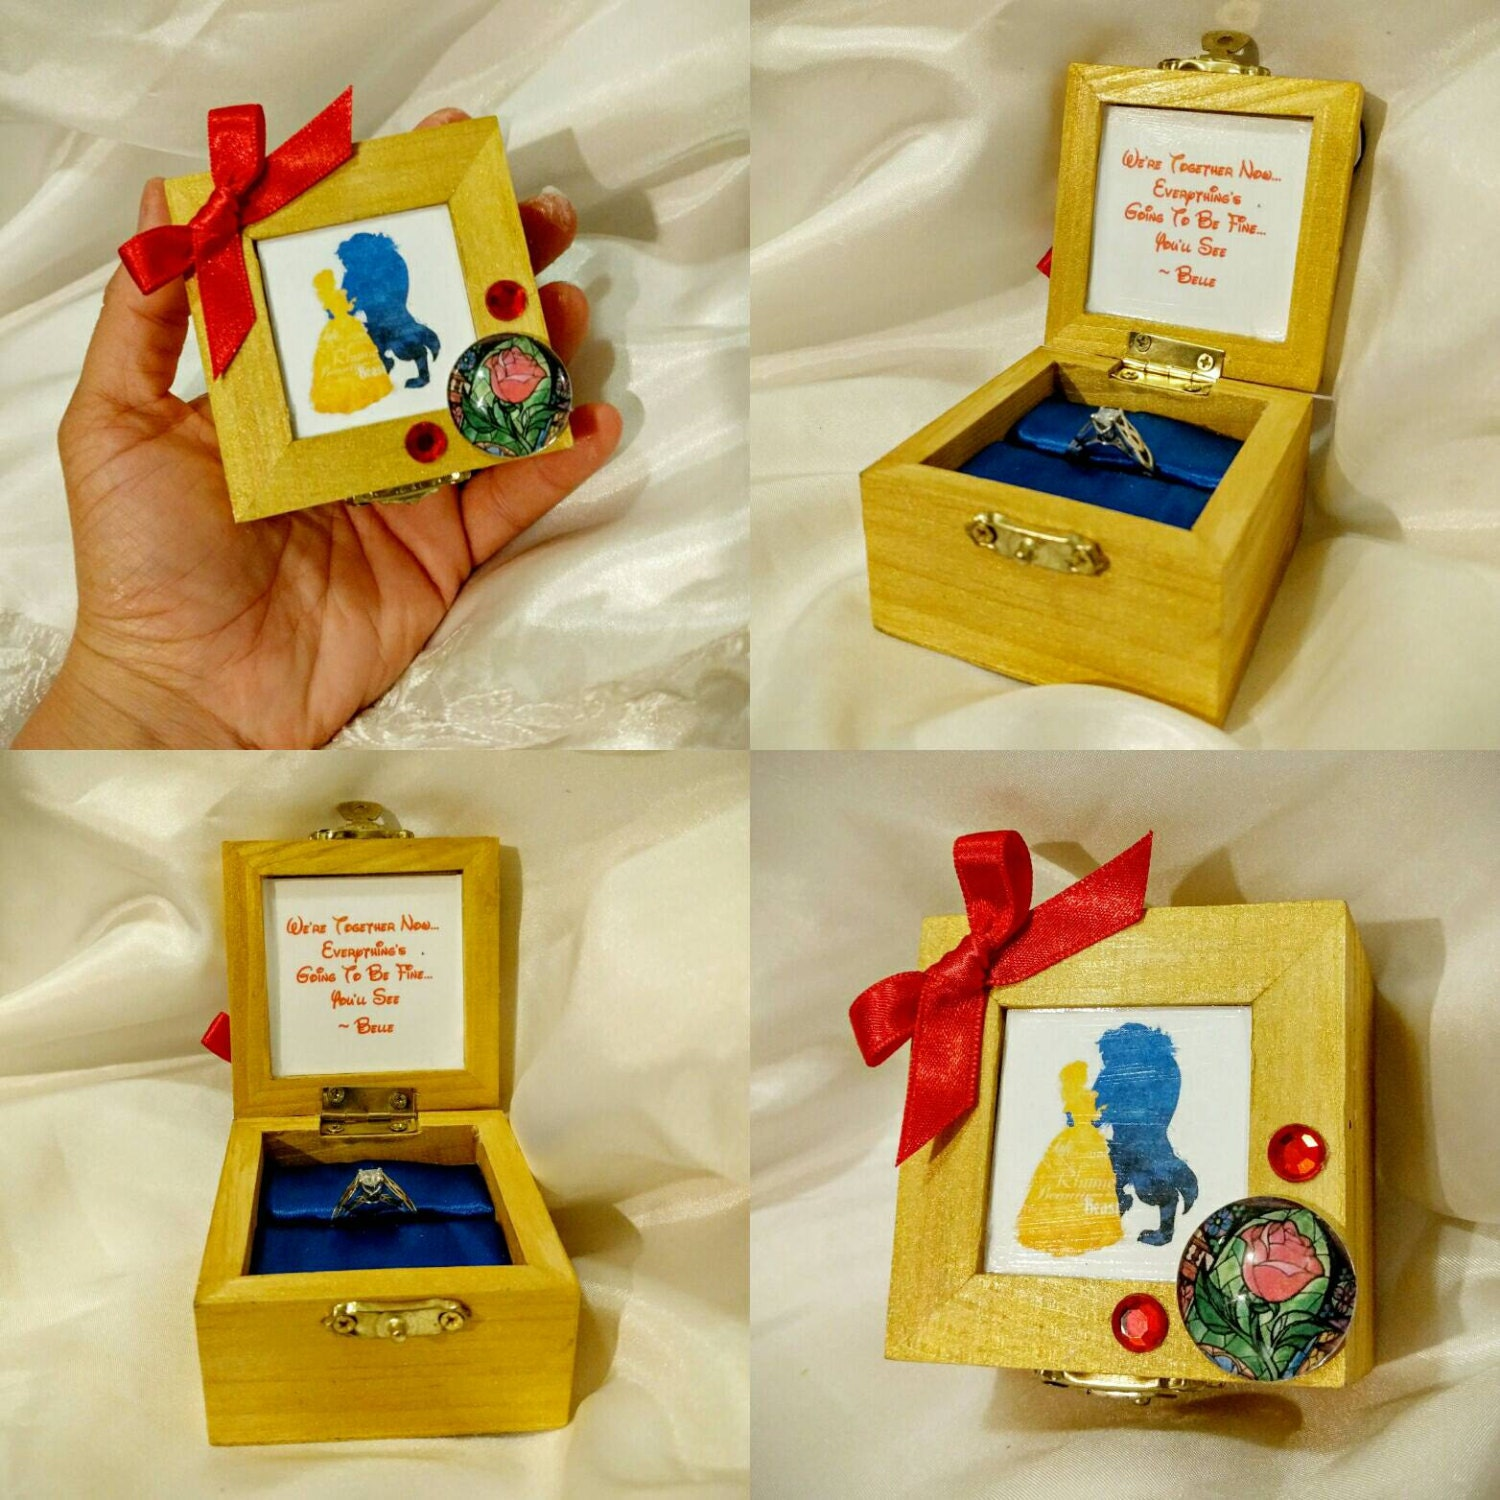 Disneys Beauty And The Beast Inspired Engagement Ring Box With